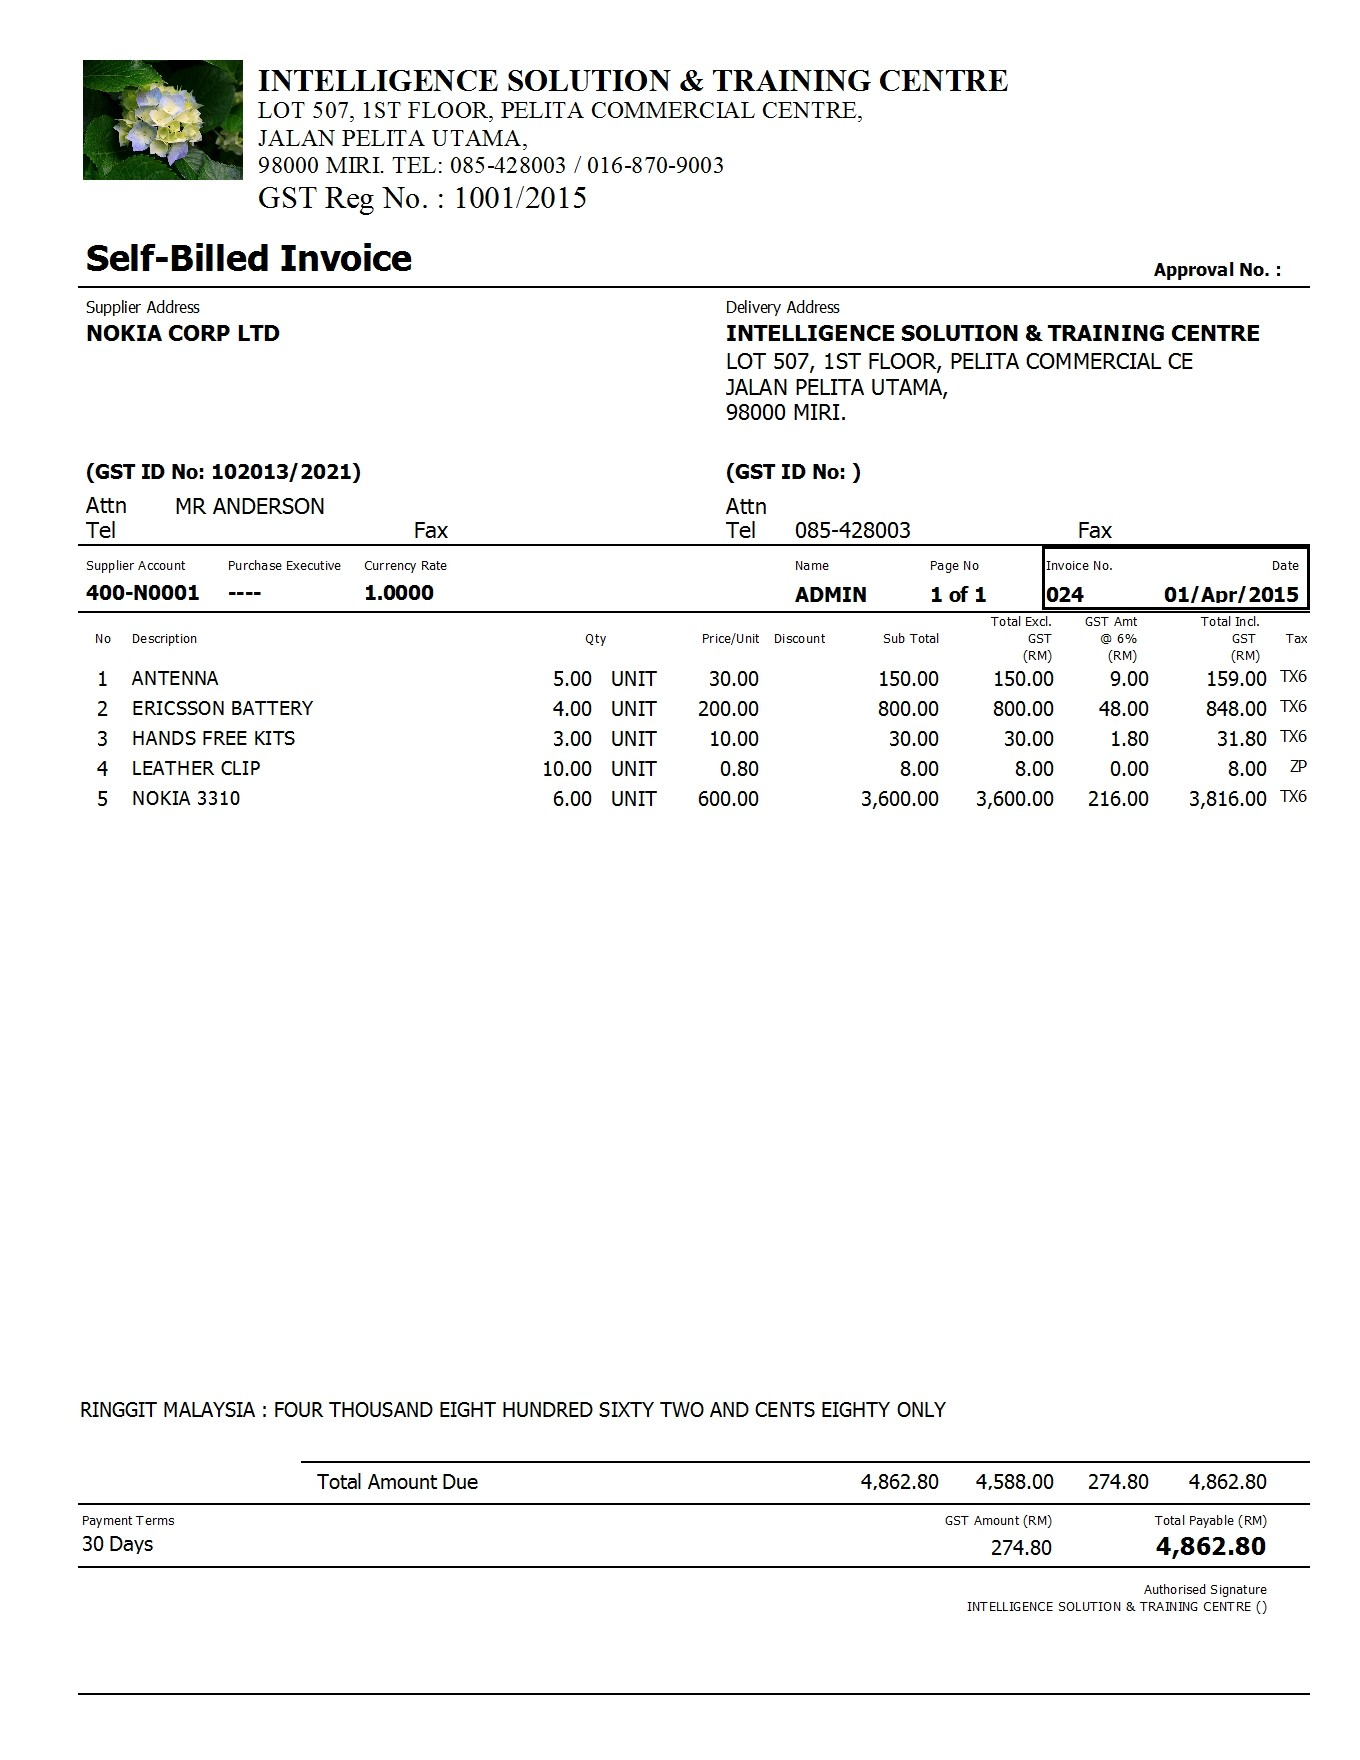 SELF-BILLED INVOICE GST FORMAT